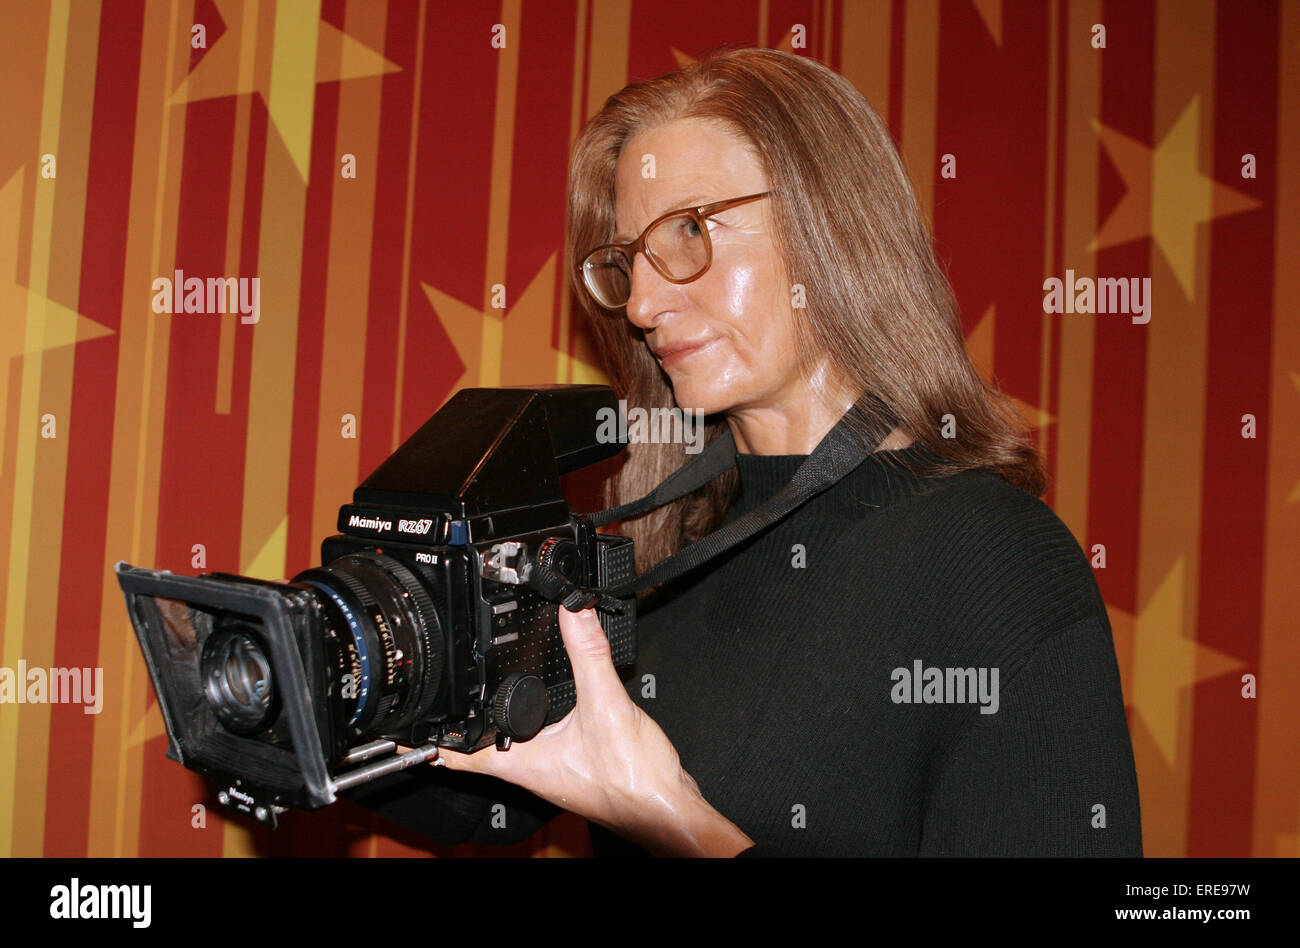 photographer annie leibovitz celebrity wax figure at madame stock photo 83293165 alamy. Black Bedroom Furniture Sets. Home Design Ideas